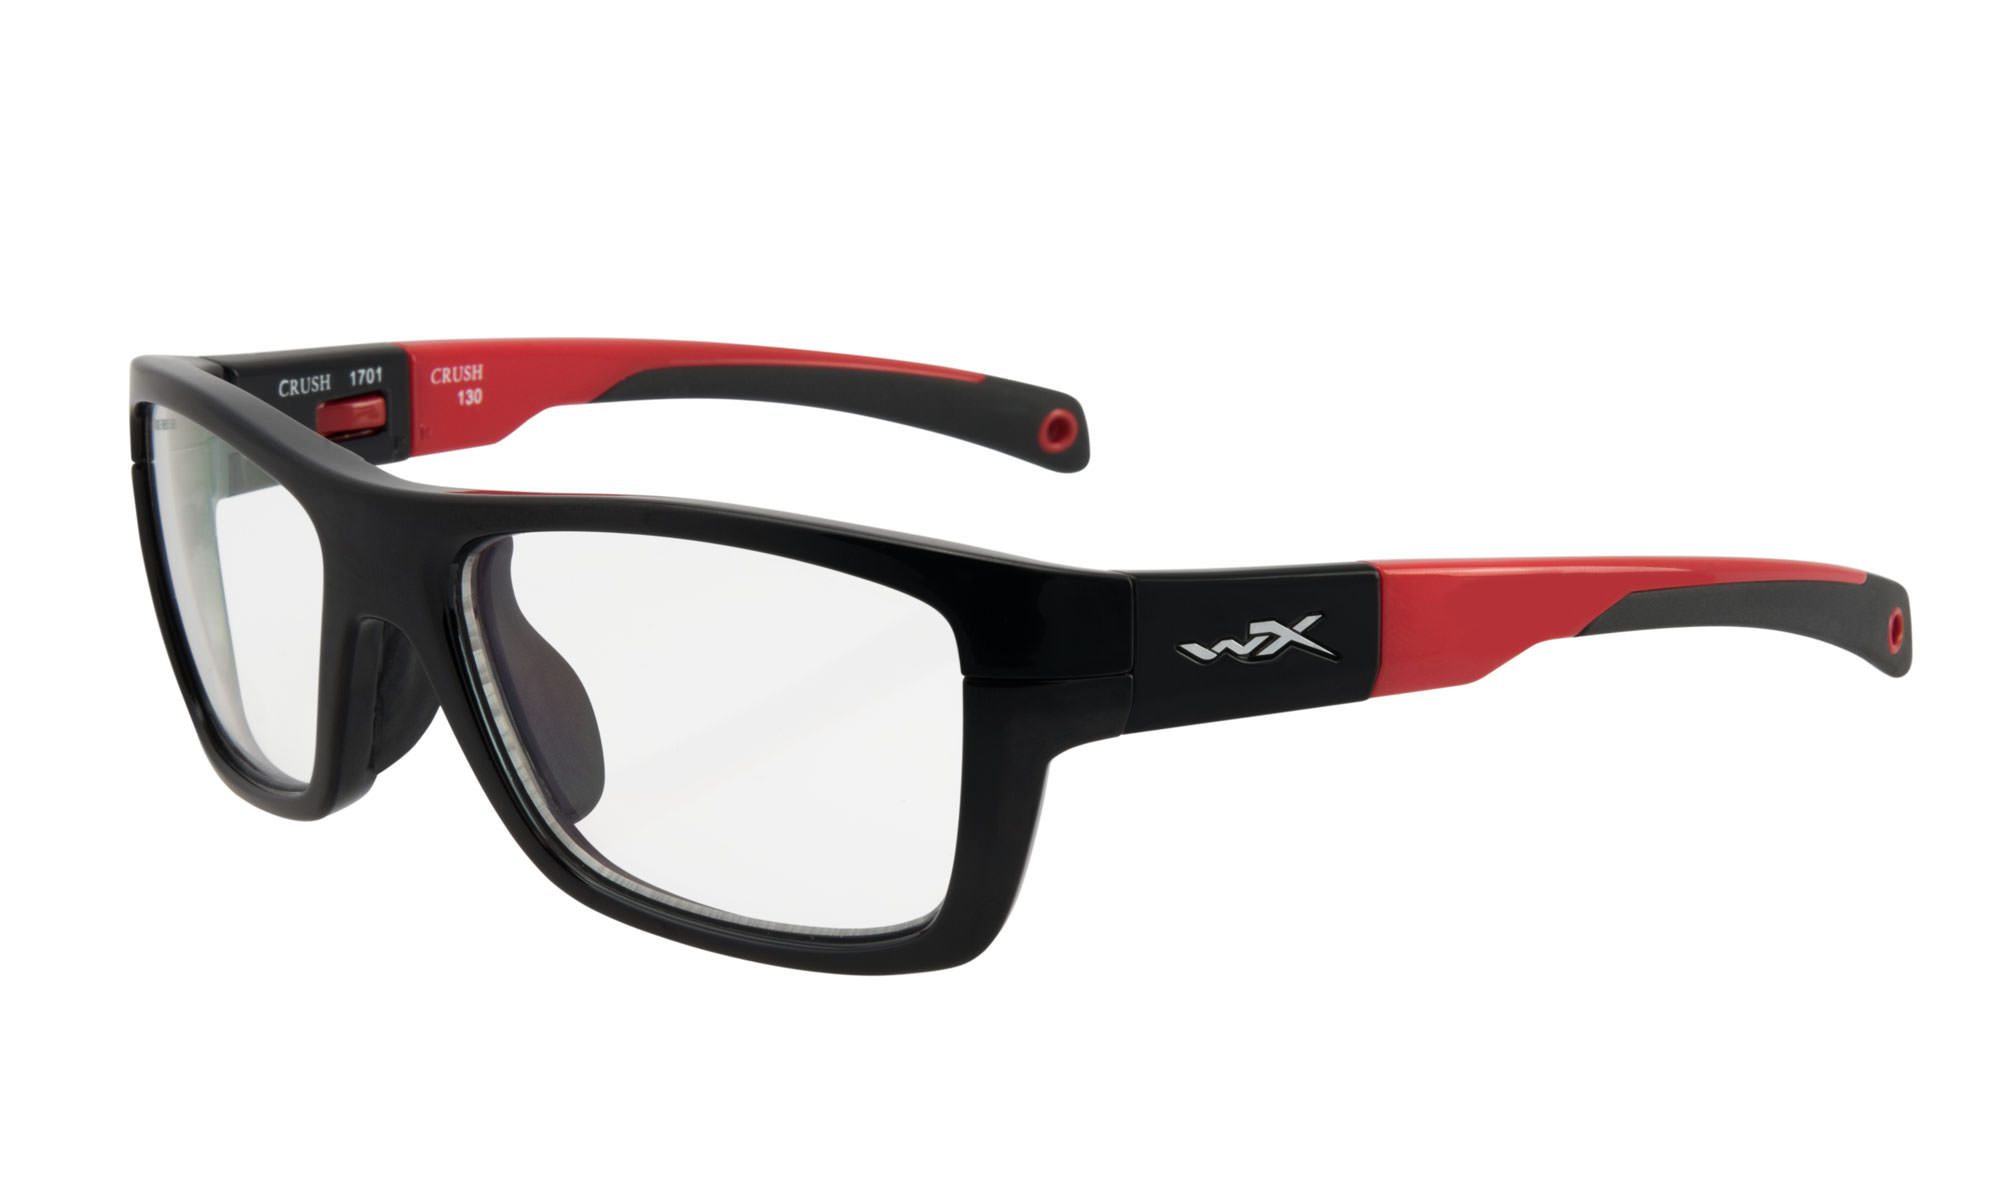 8f01a1bc28 Wiley-X WX Crush Gloss Black and Red with Clear Lenses